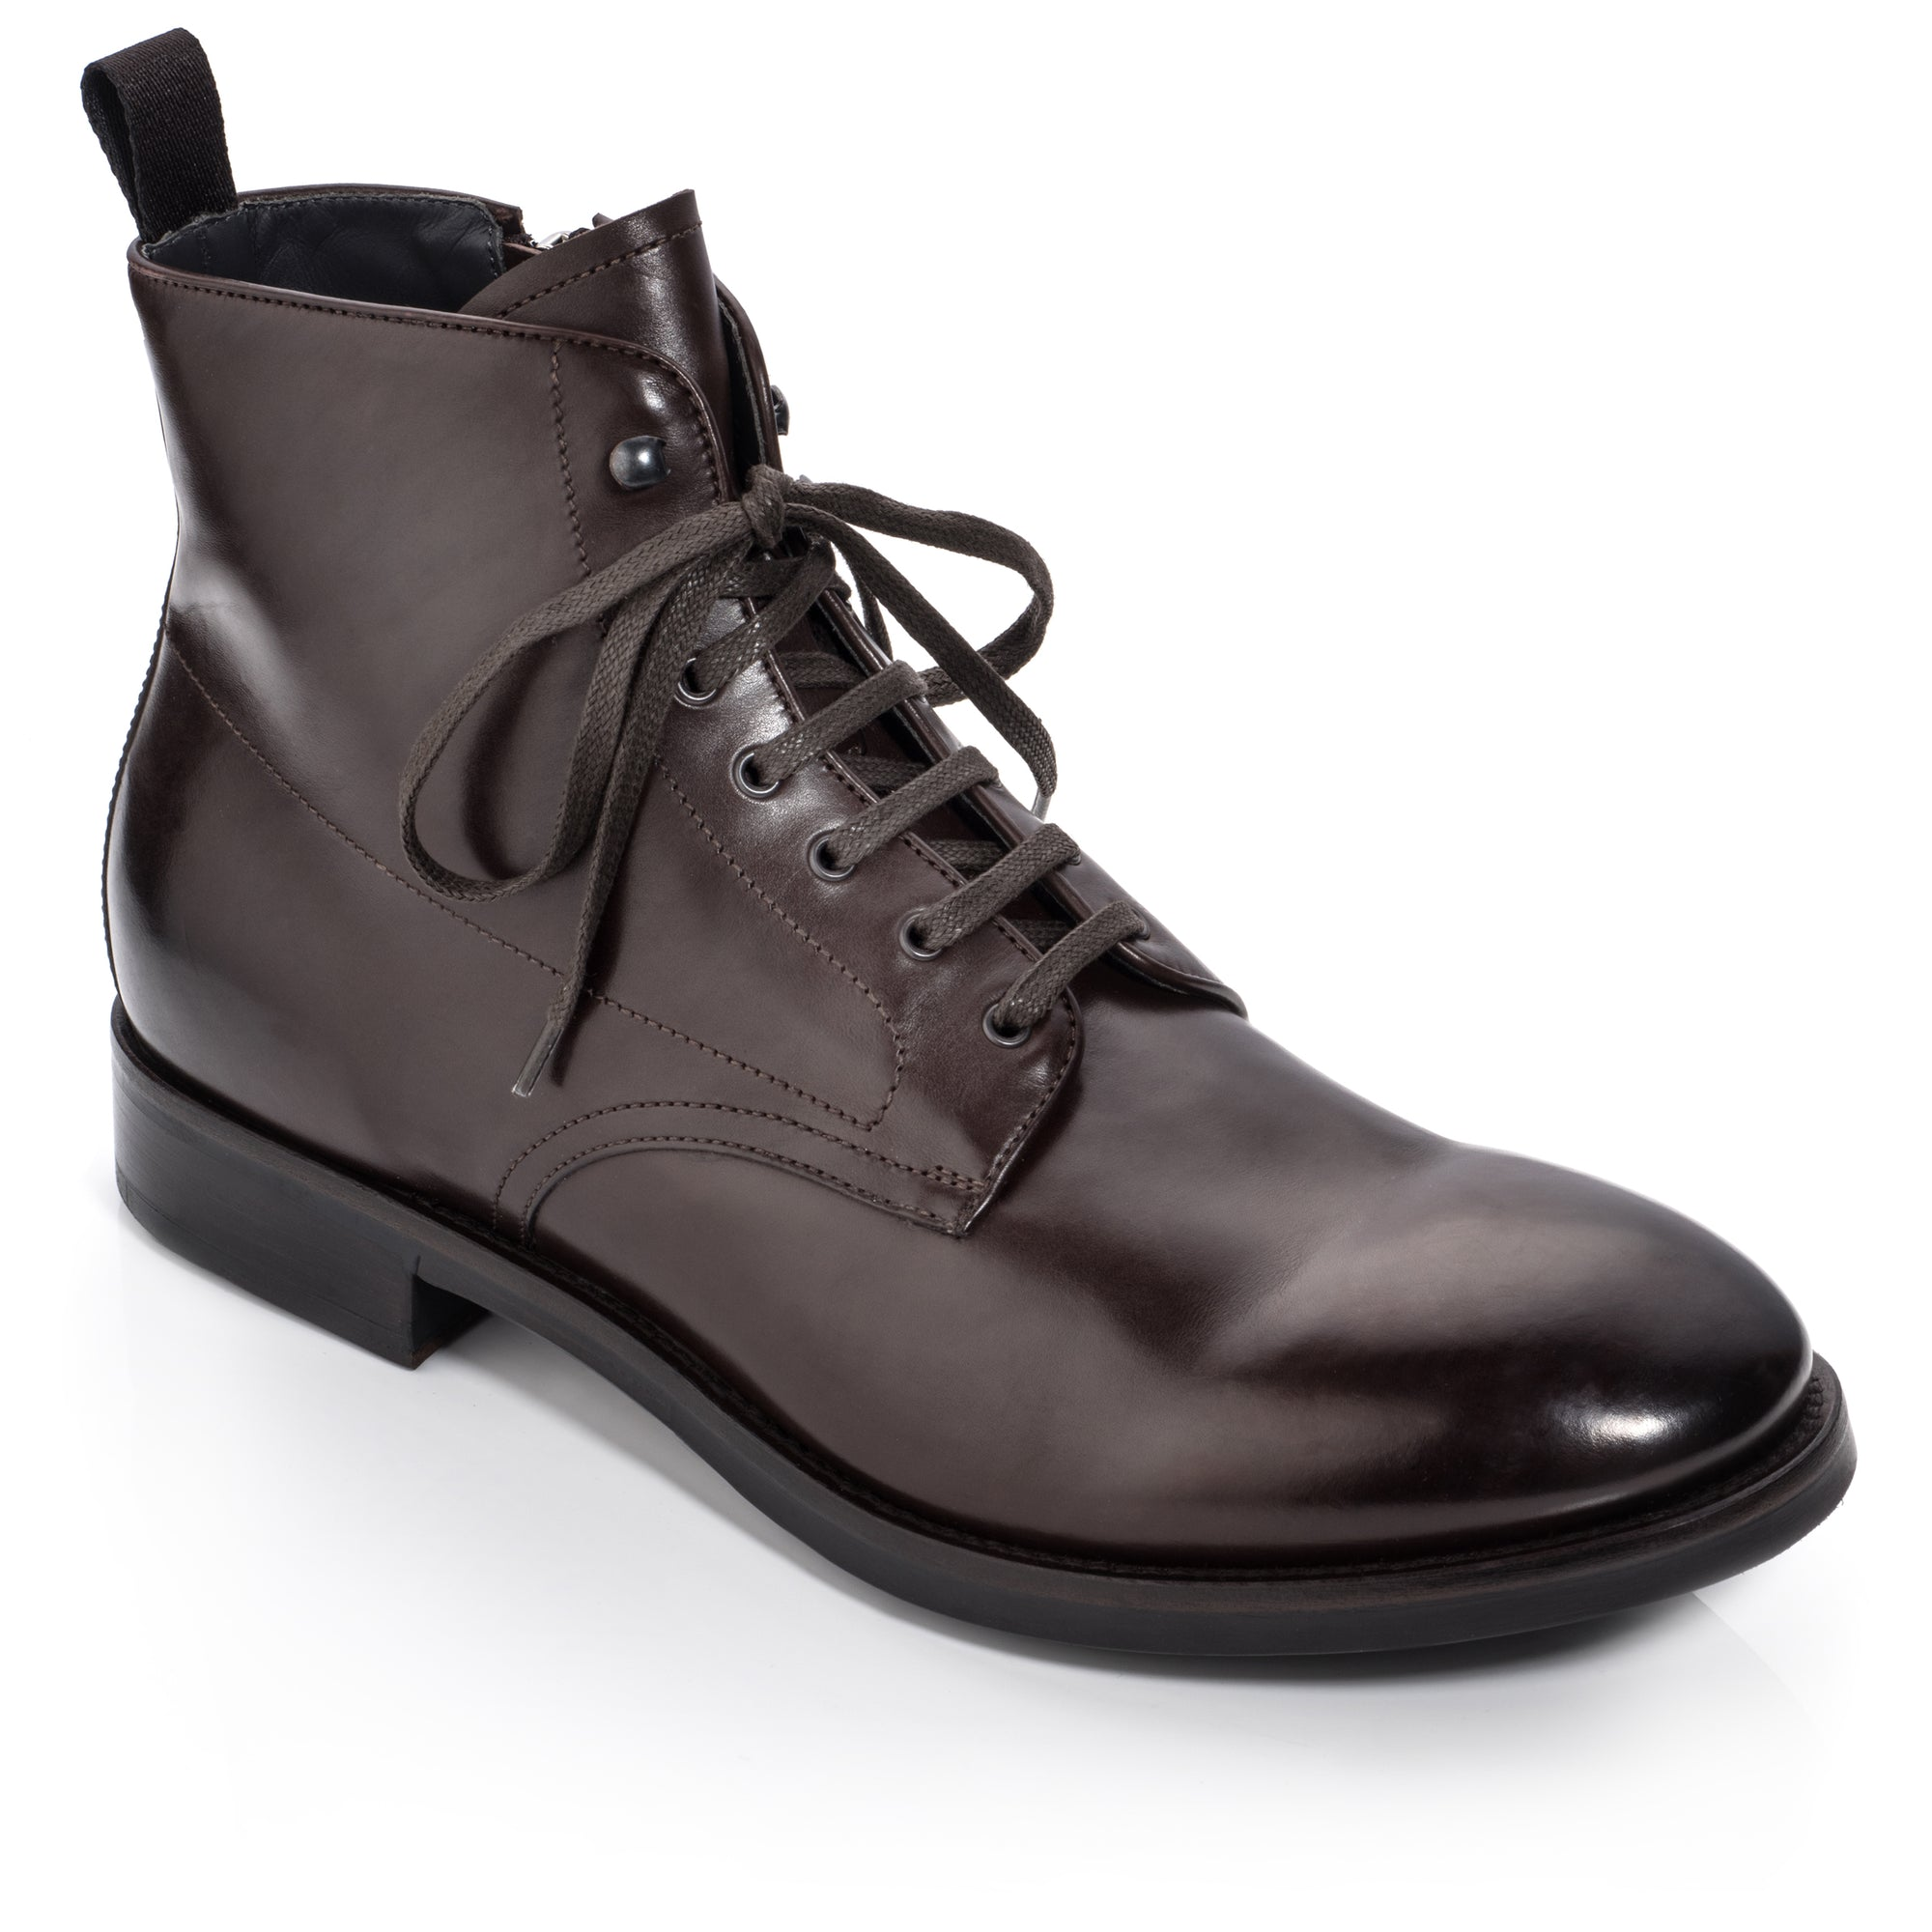 5a39d41b8 Athens Dark Brown - To Boot New York